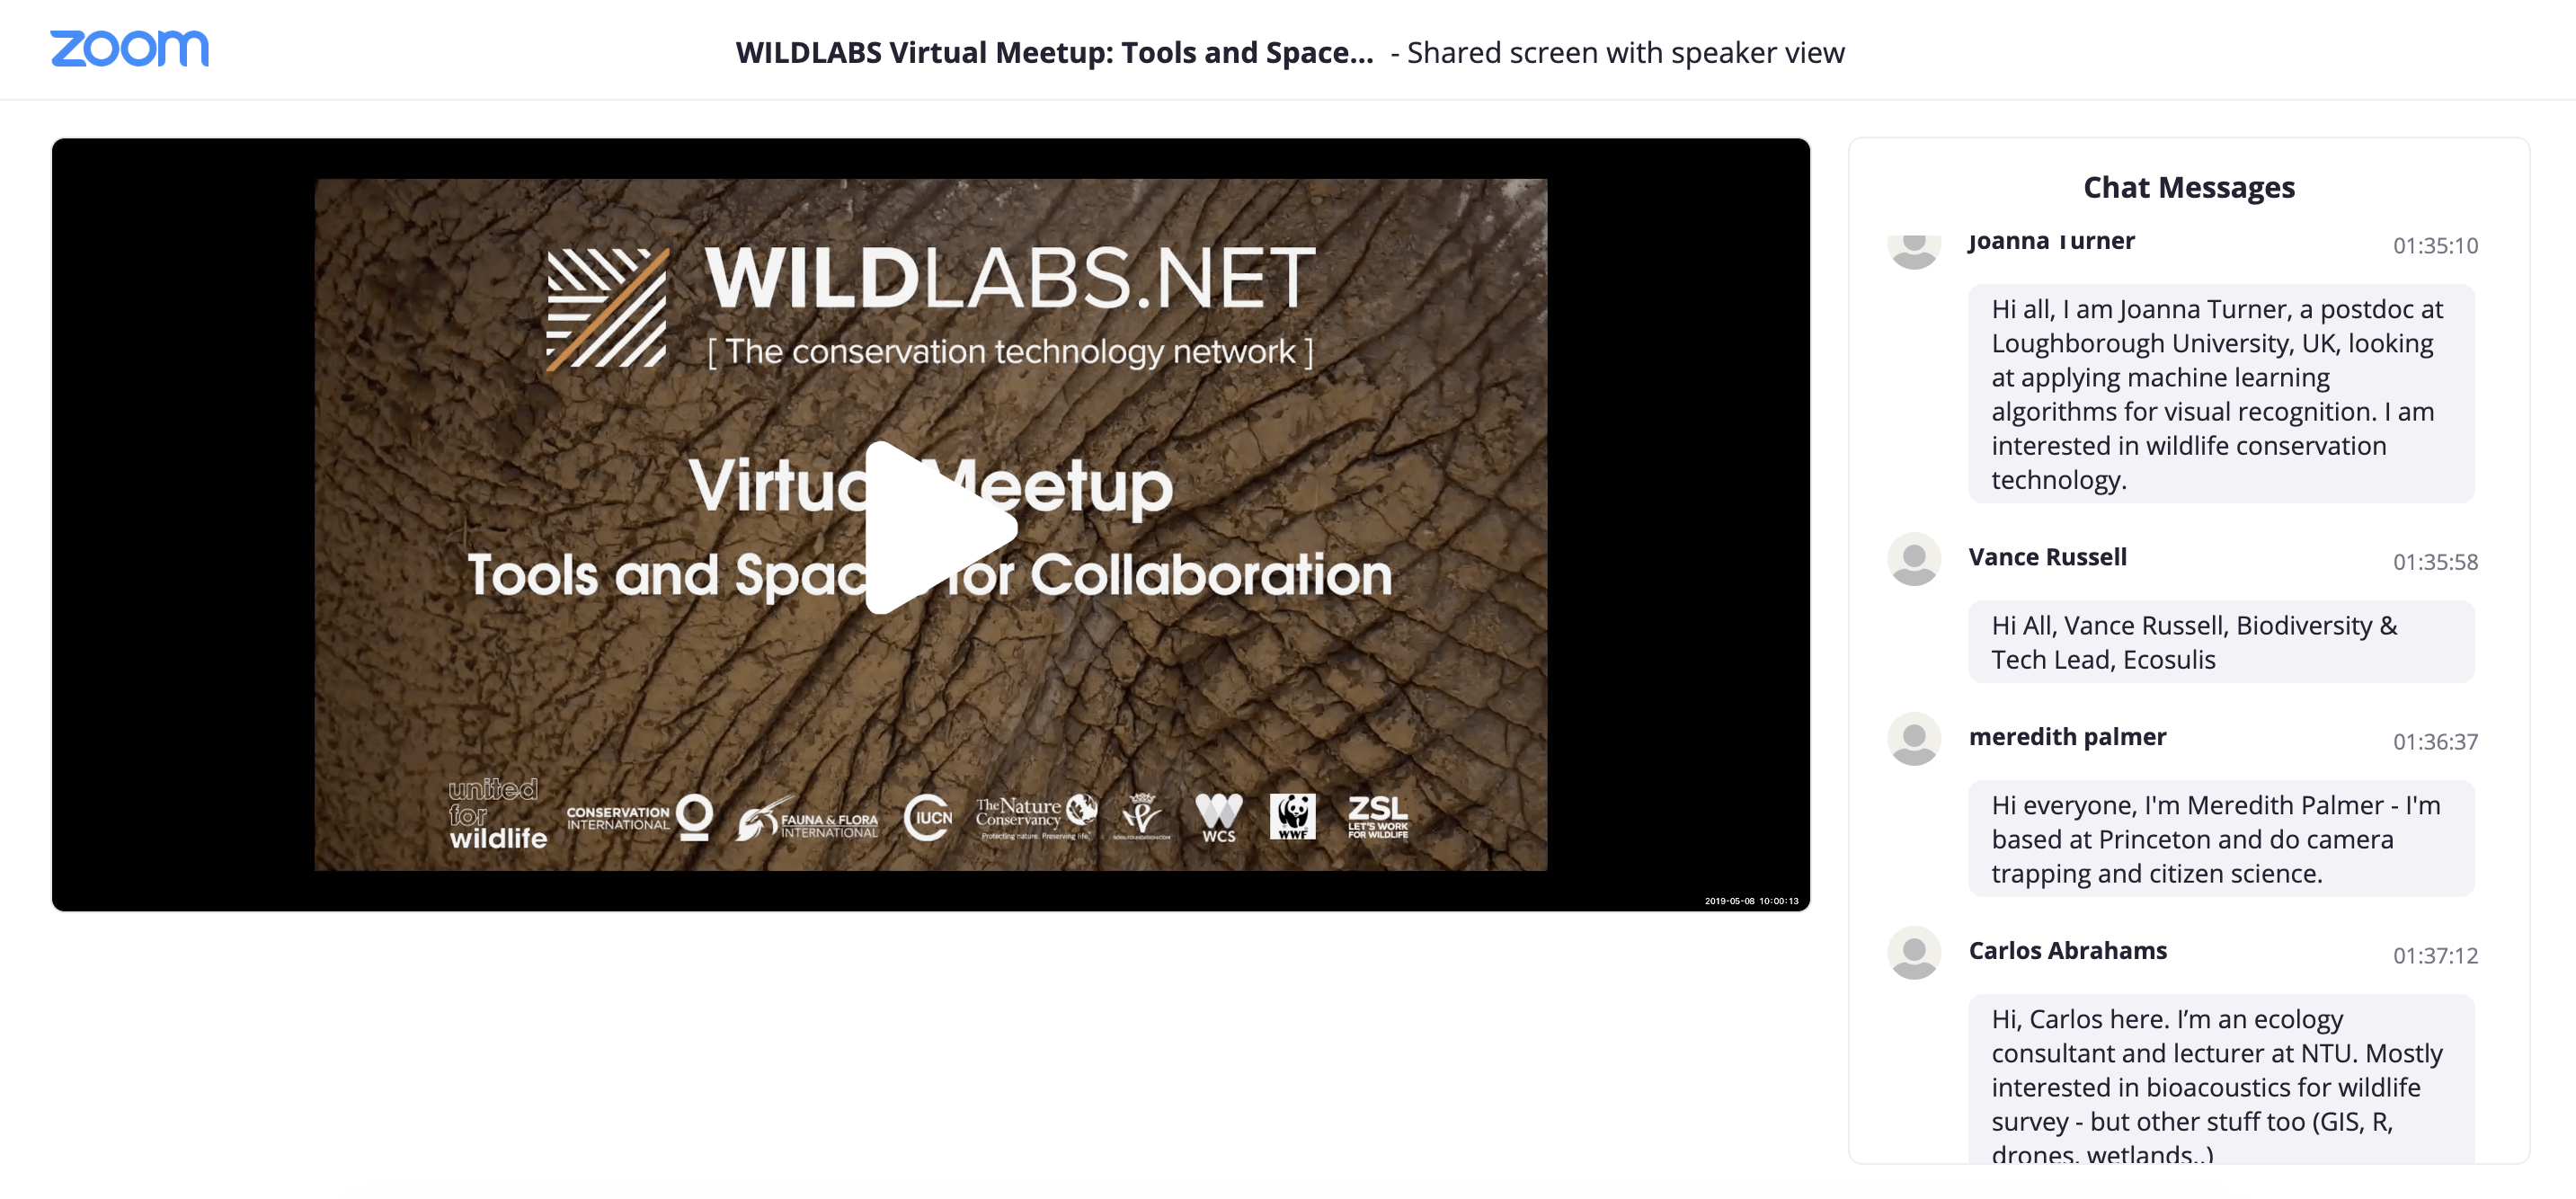 WILDLABS Virtual Meetup Link to Collaboration Video Recording